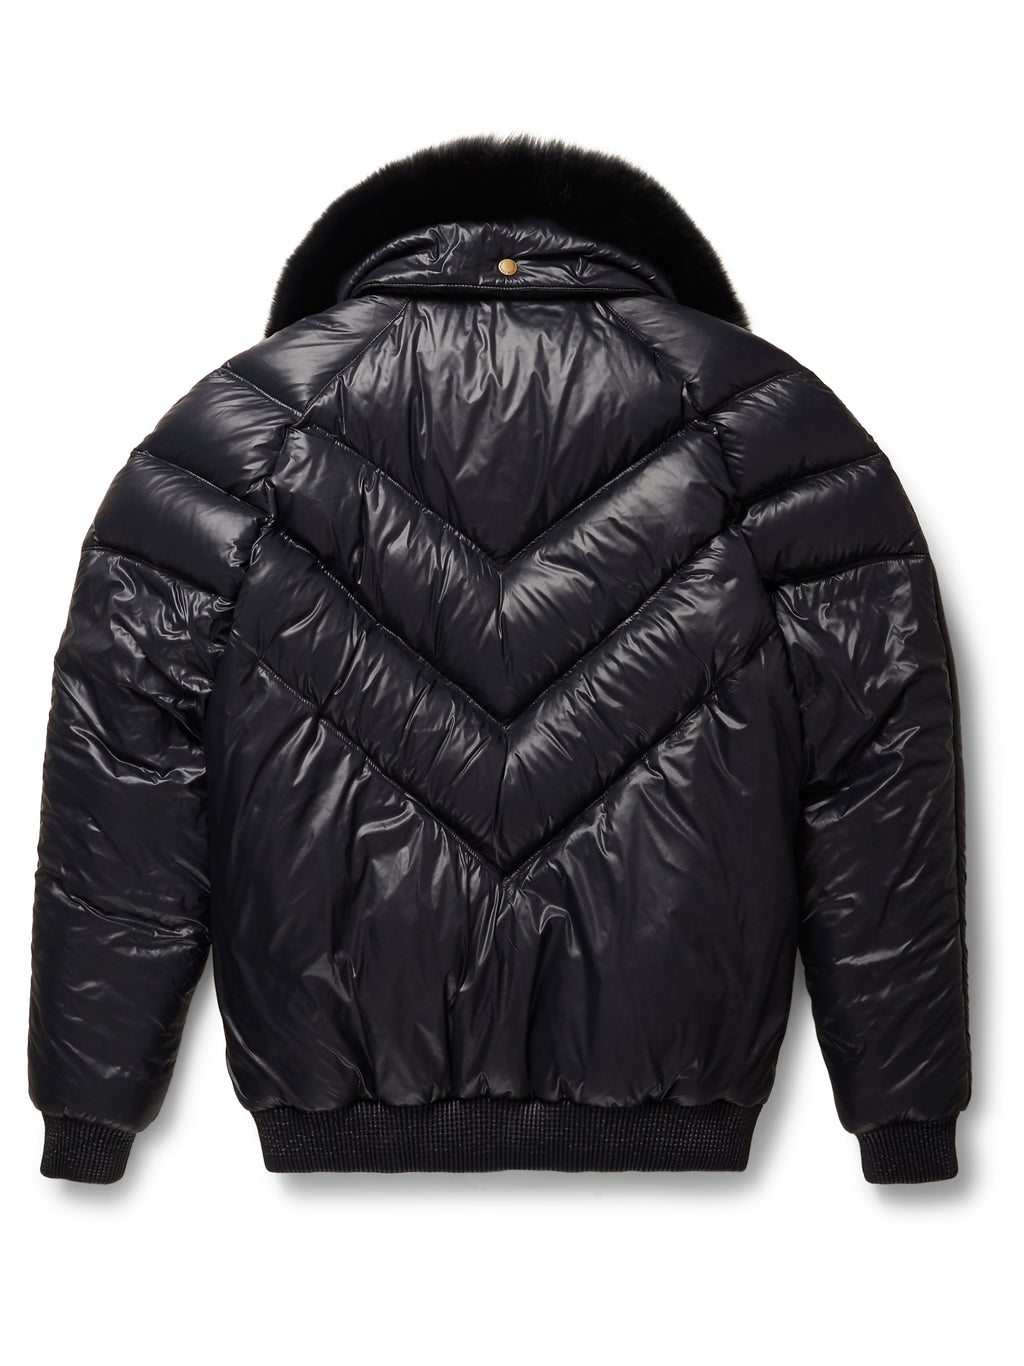 Goose Country V-Bomber: Nylon Black w/ Black Fox Fur